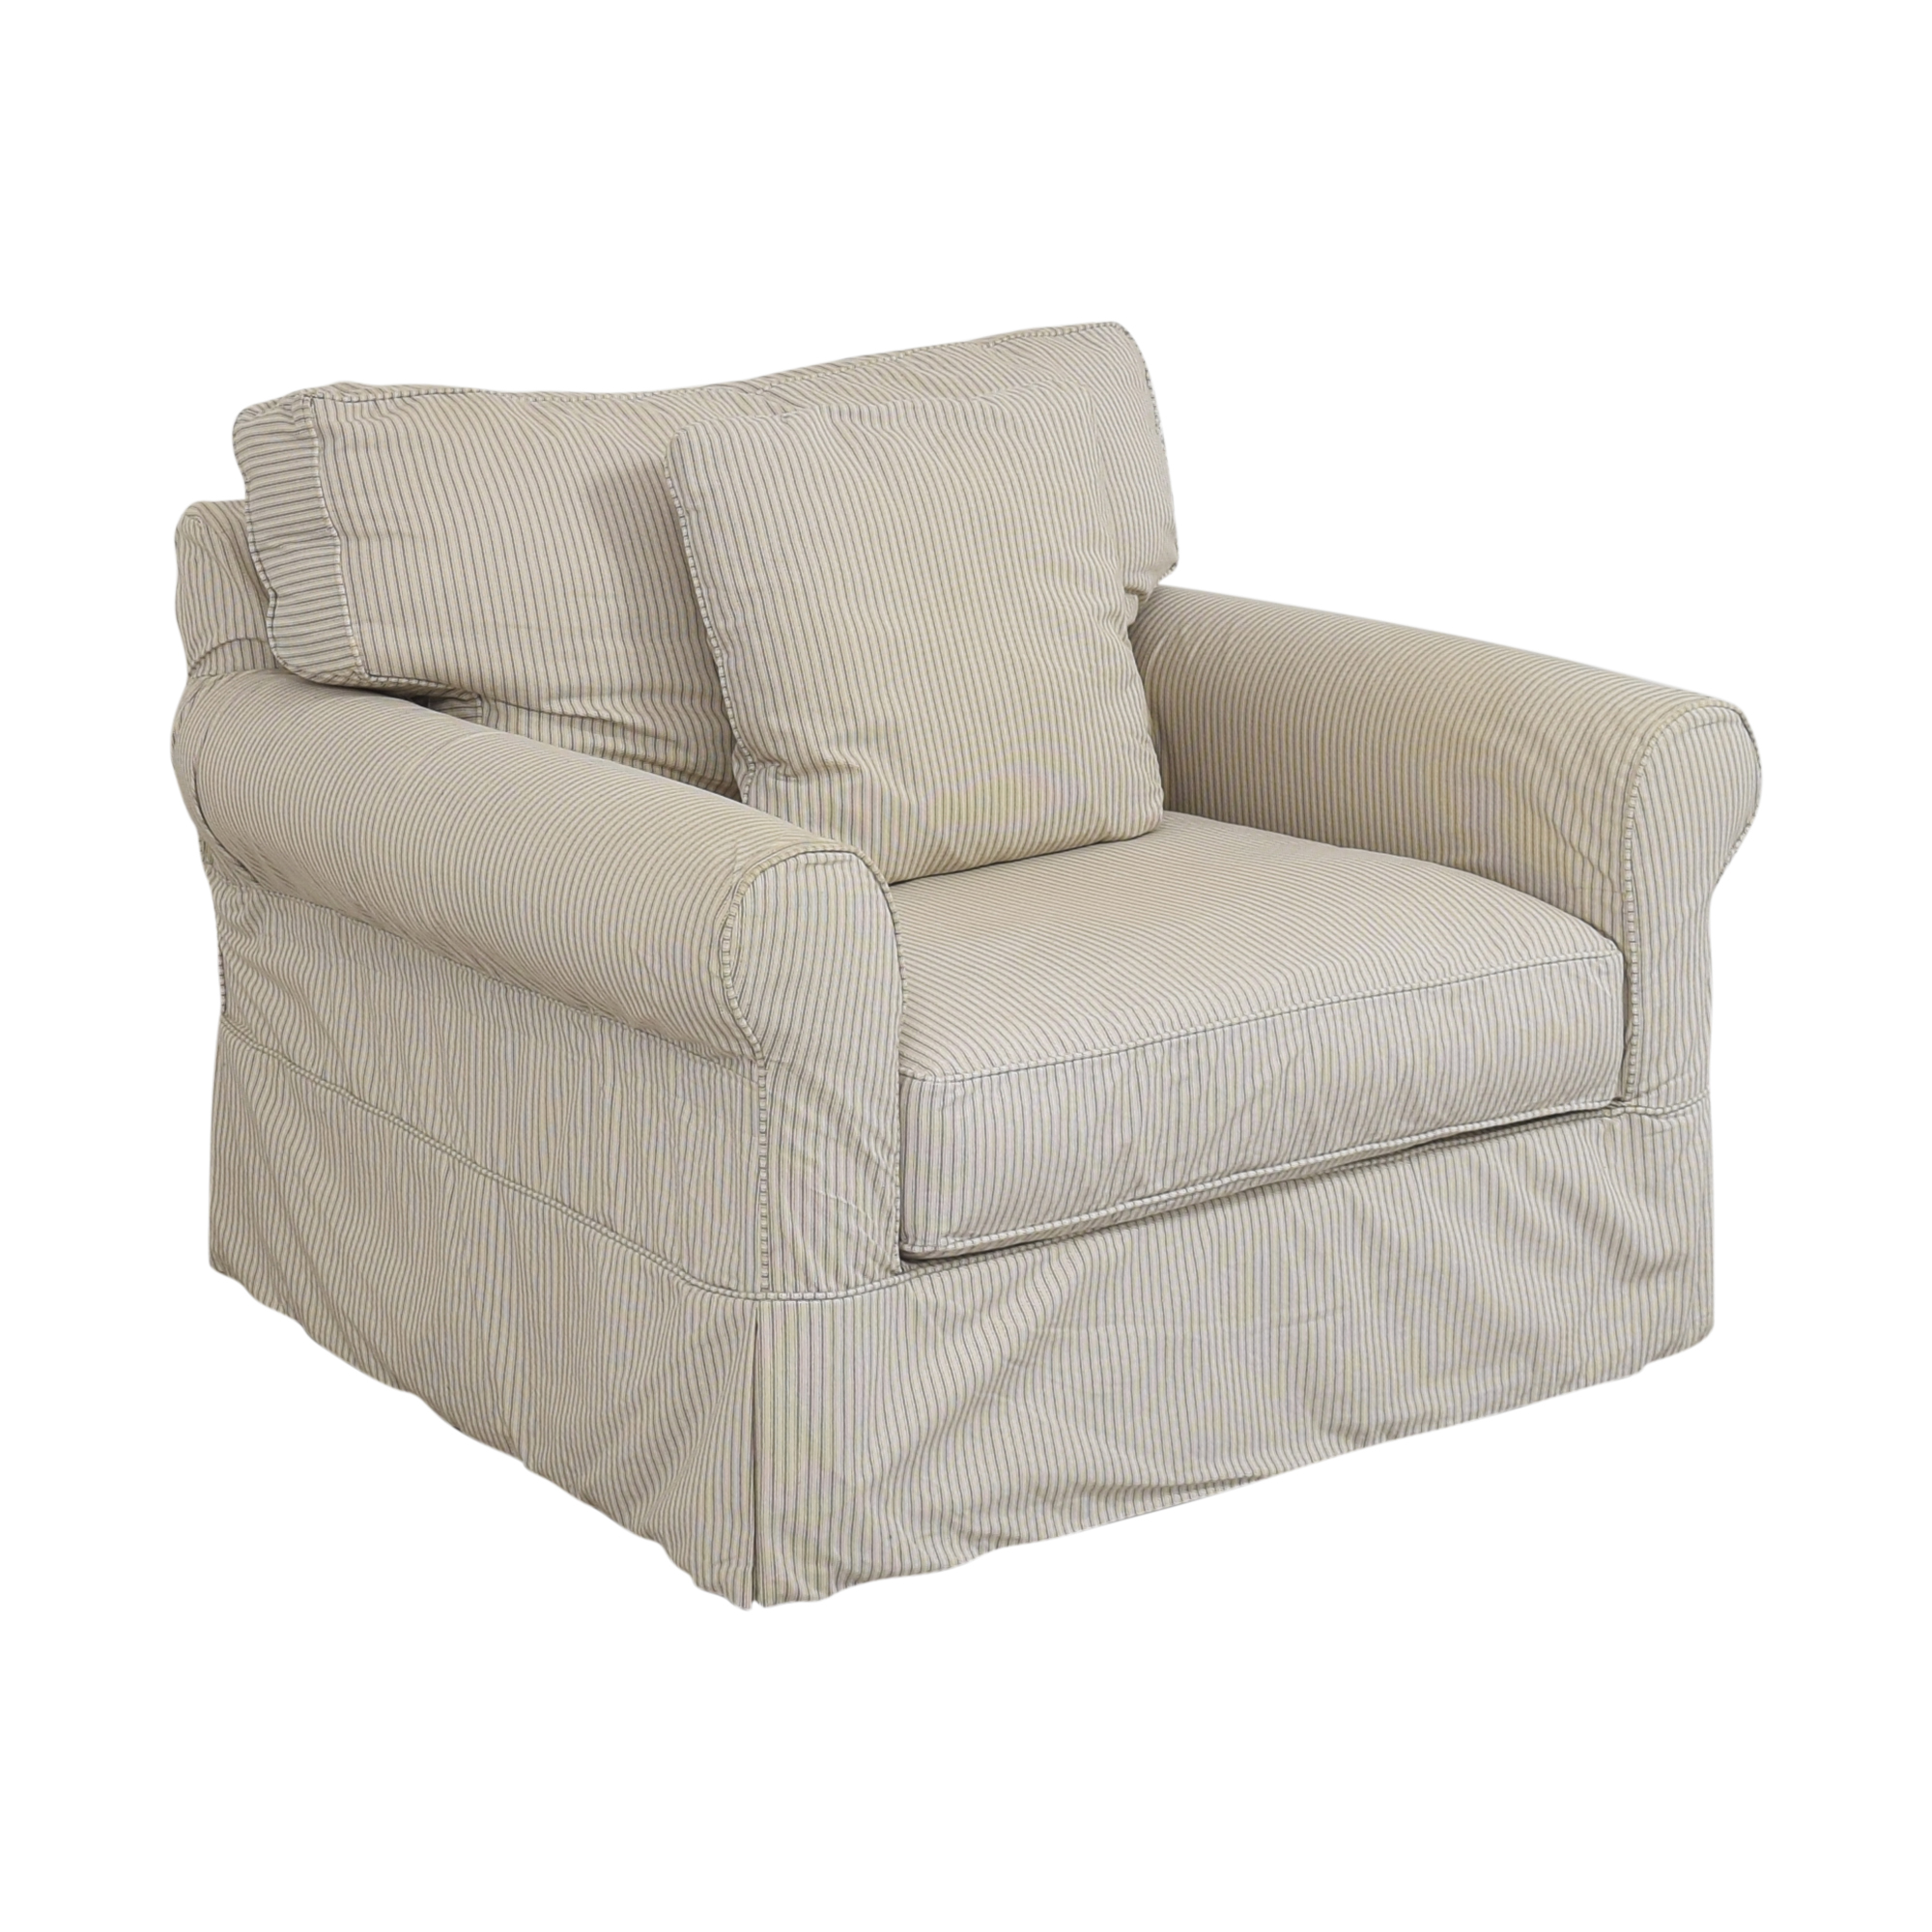 buy Crate & Barrel Slipcovered Chair and a Half Crate & Barrel Chairs